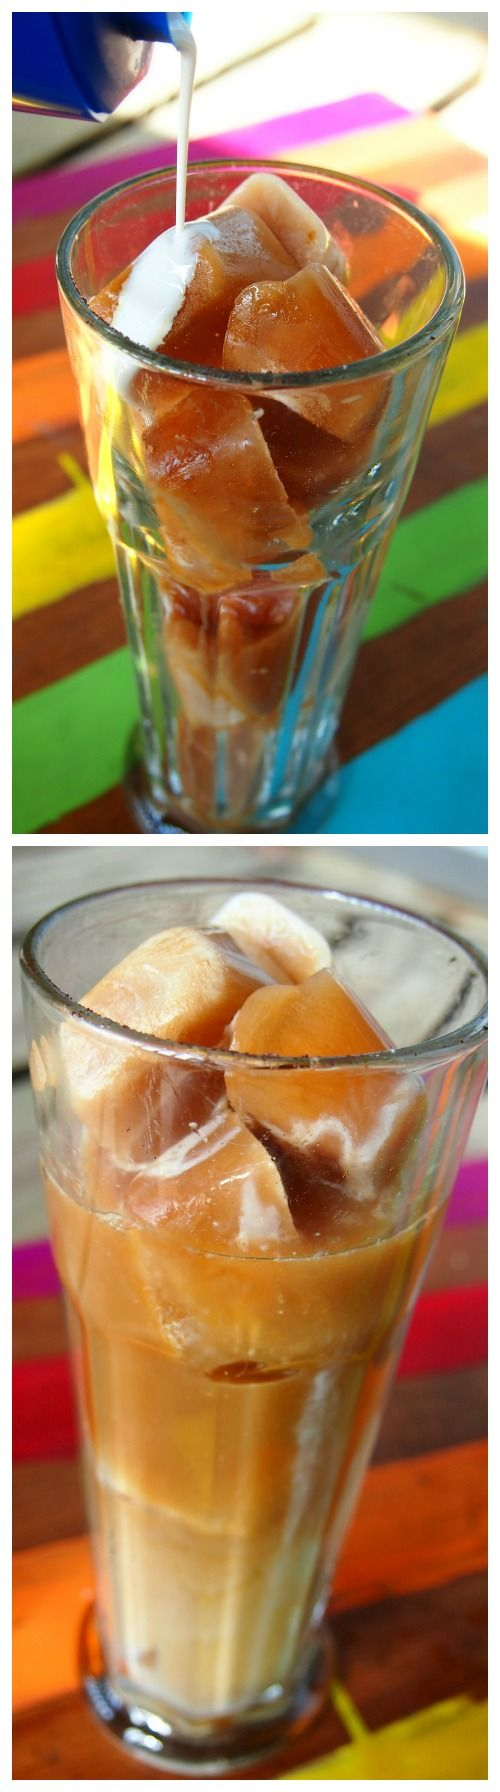 30 Calorie French Vanilla Iced Coffee With Coffee Cubes!